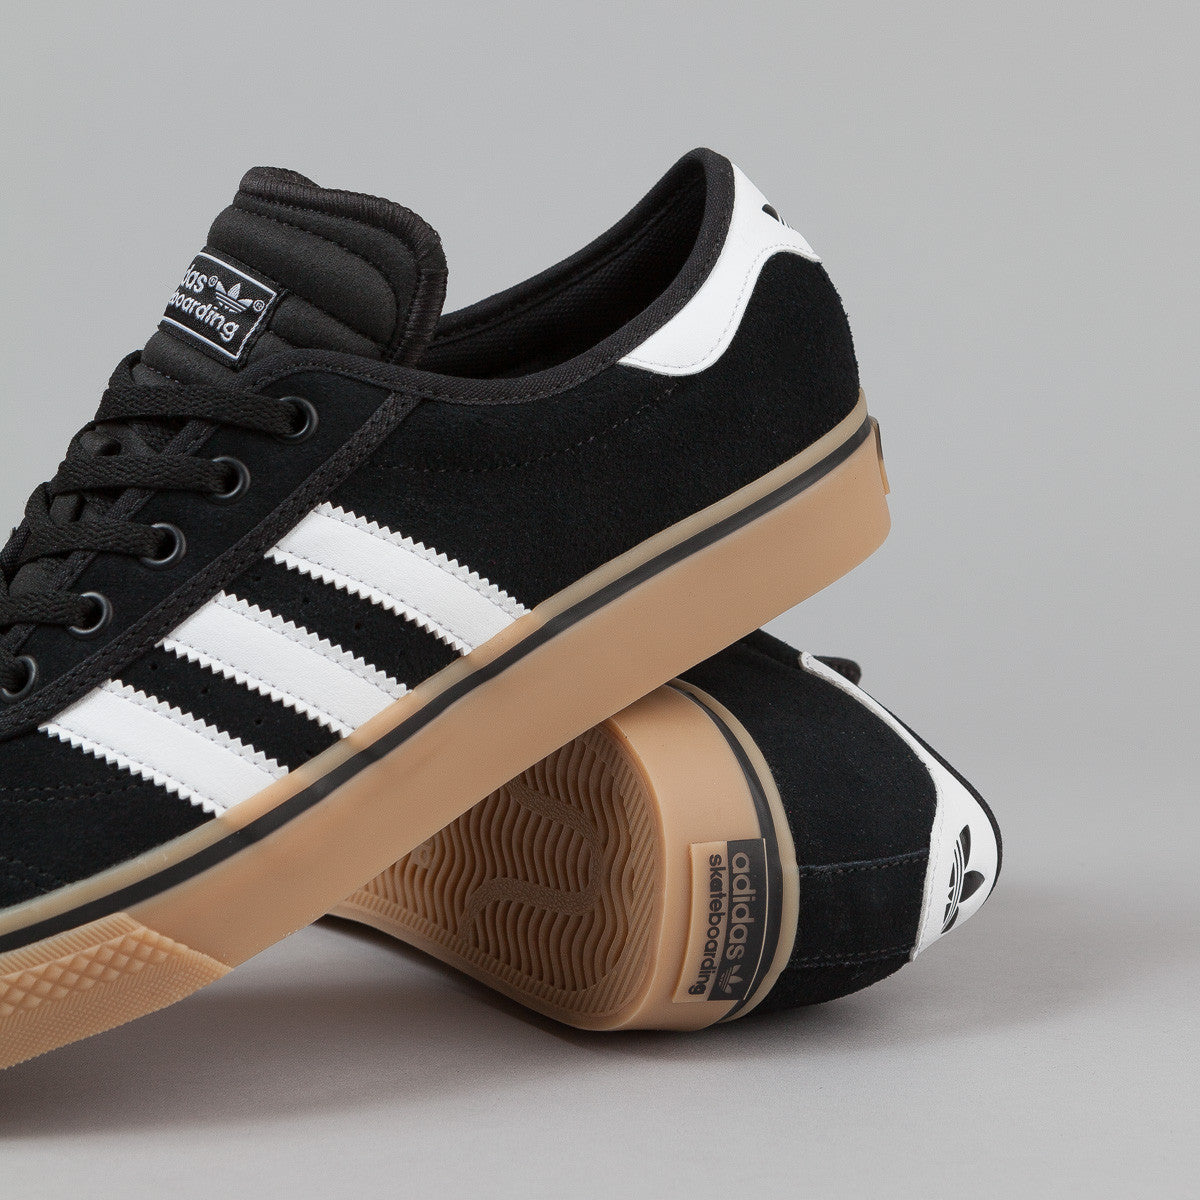 Adidas Adi-Ease Premier Shoes - Core Black / FTW White / Gum